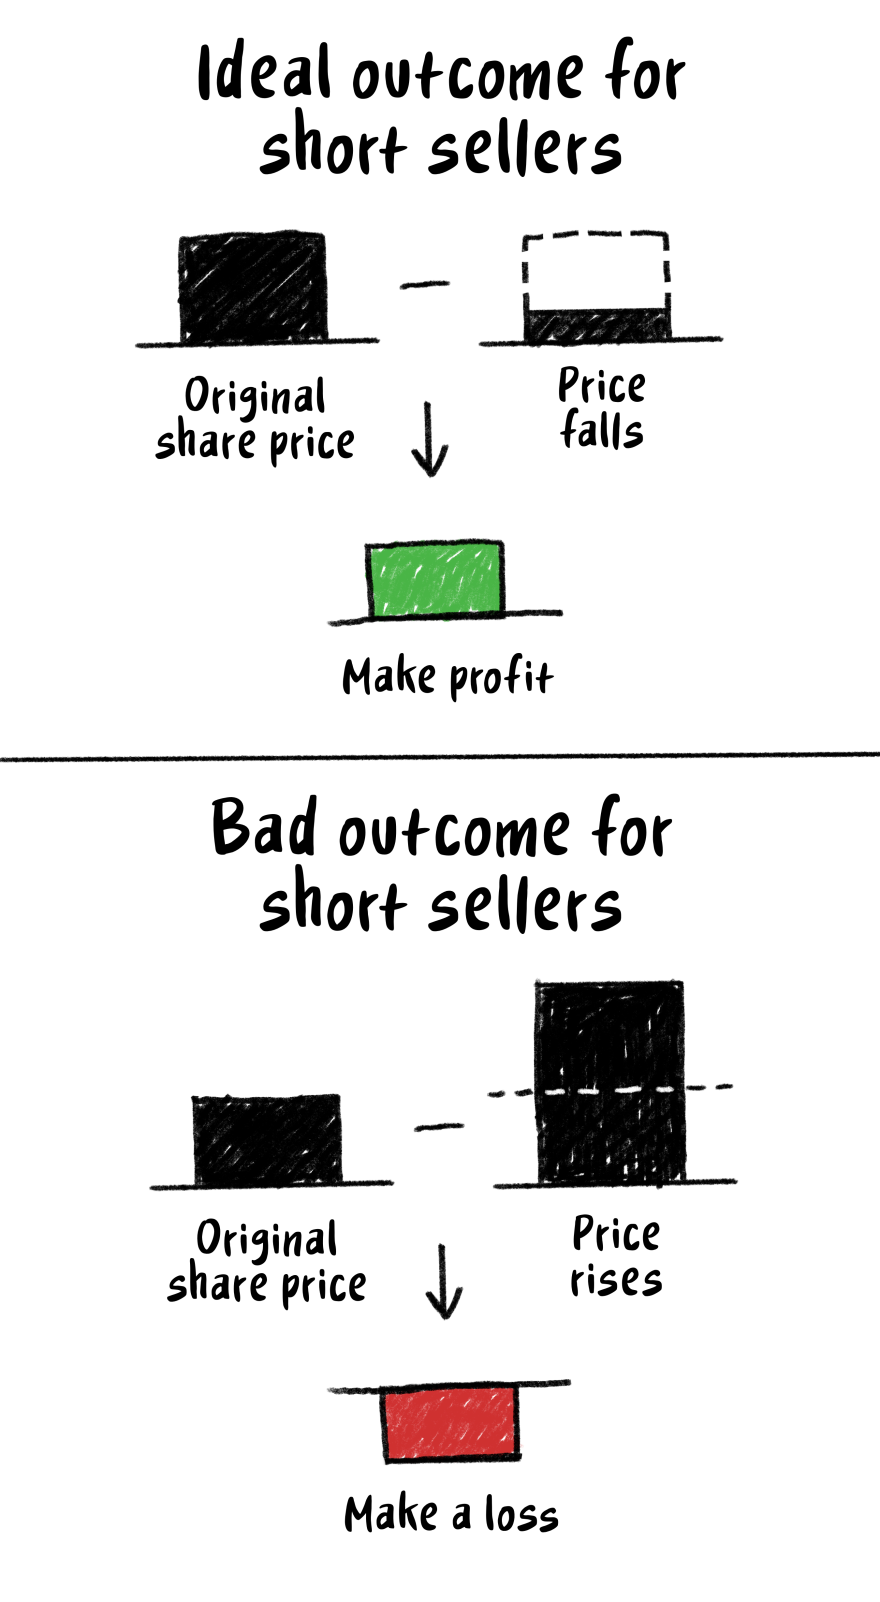 Illustrated diagram comparing ideal and bad outcomes for short sellers.